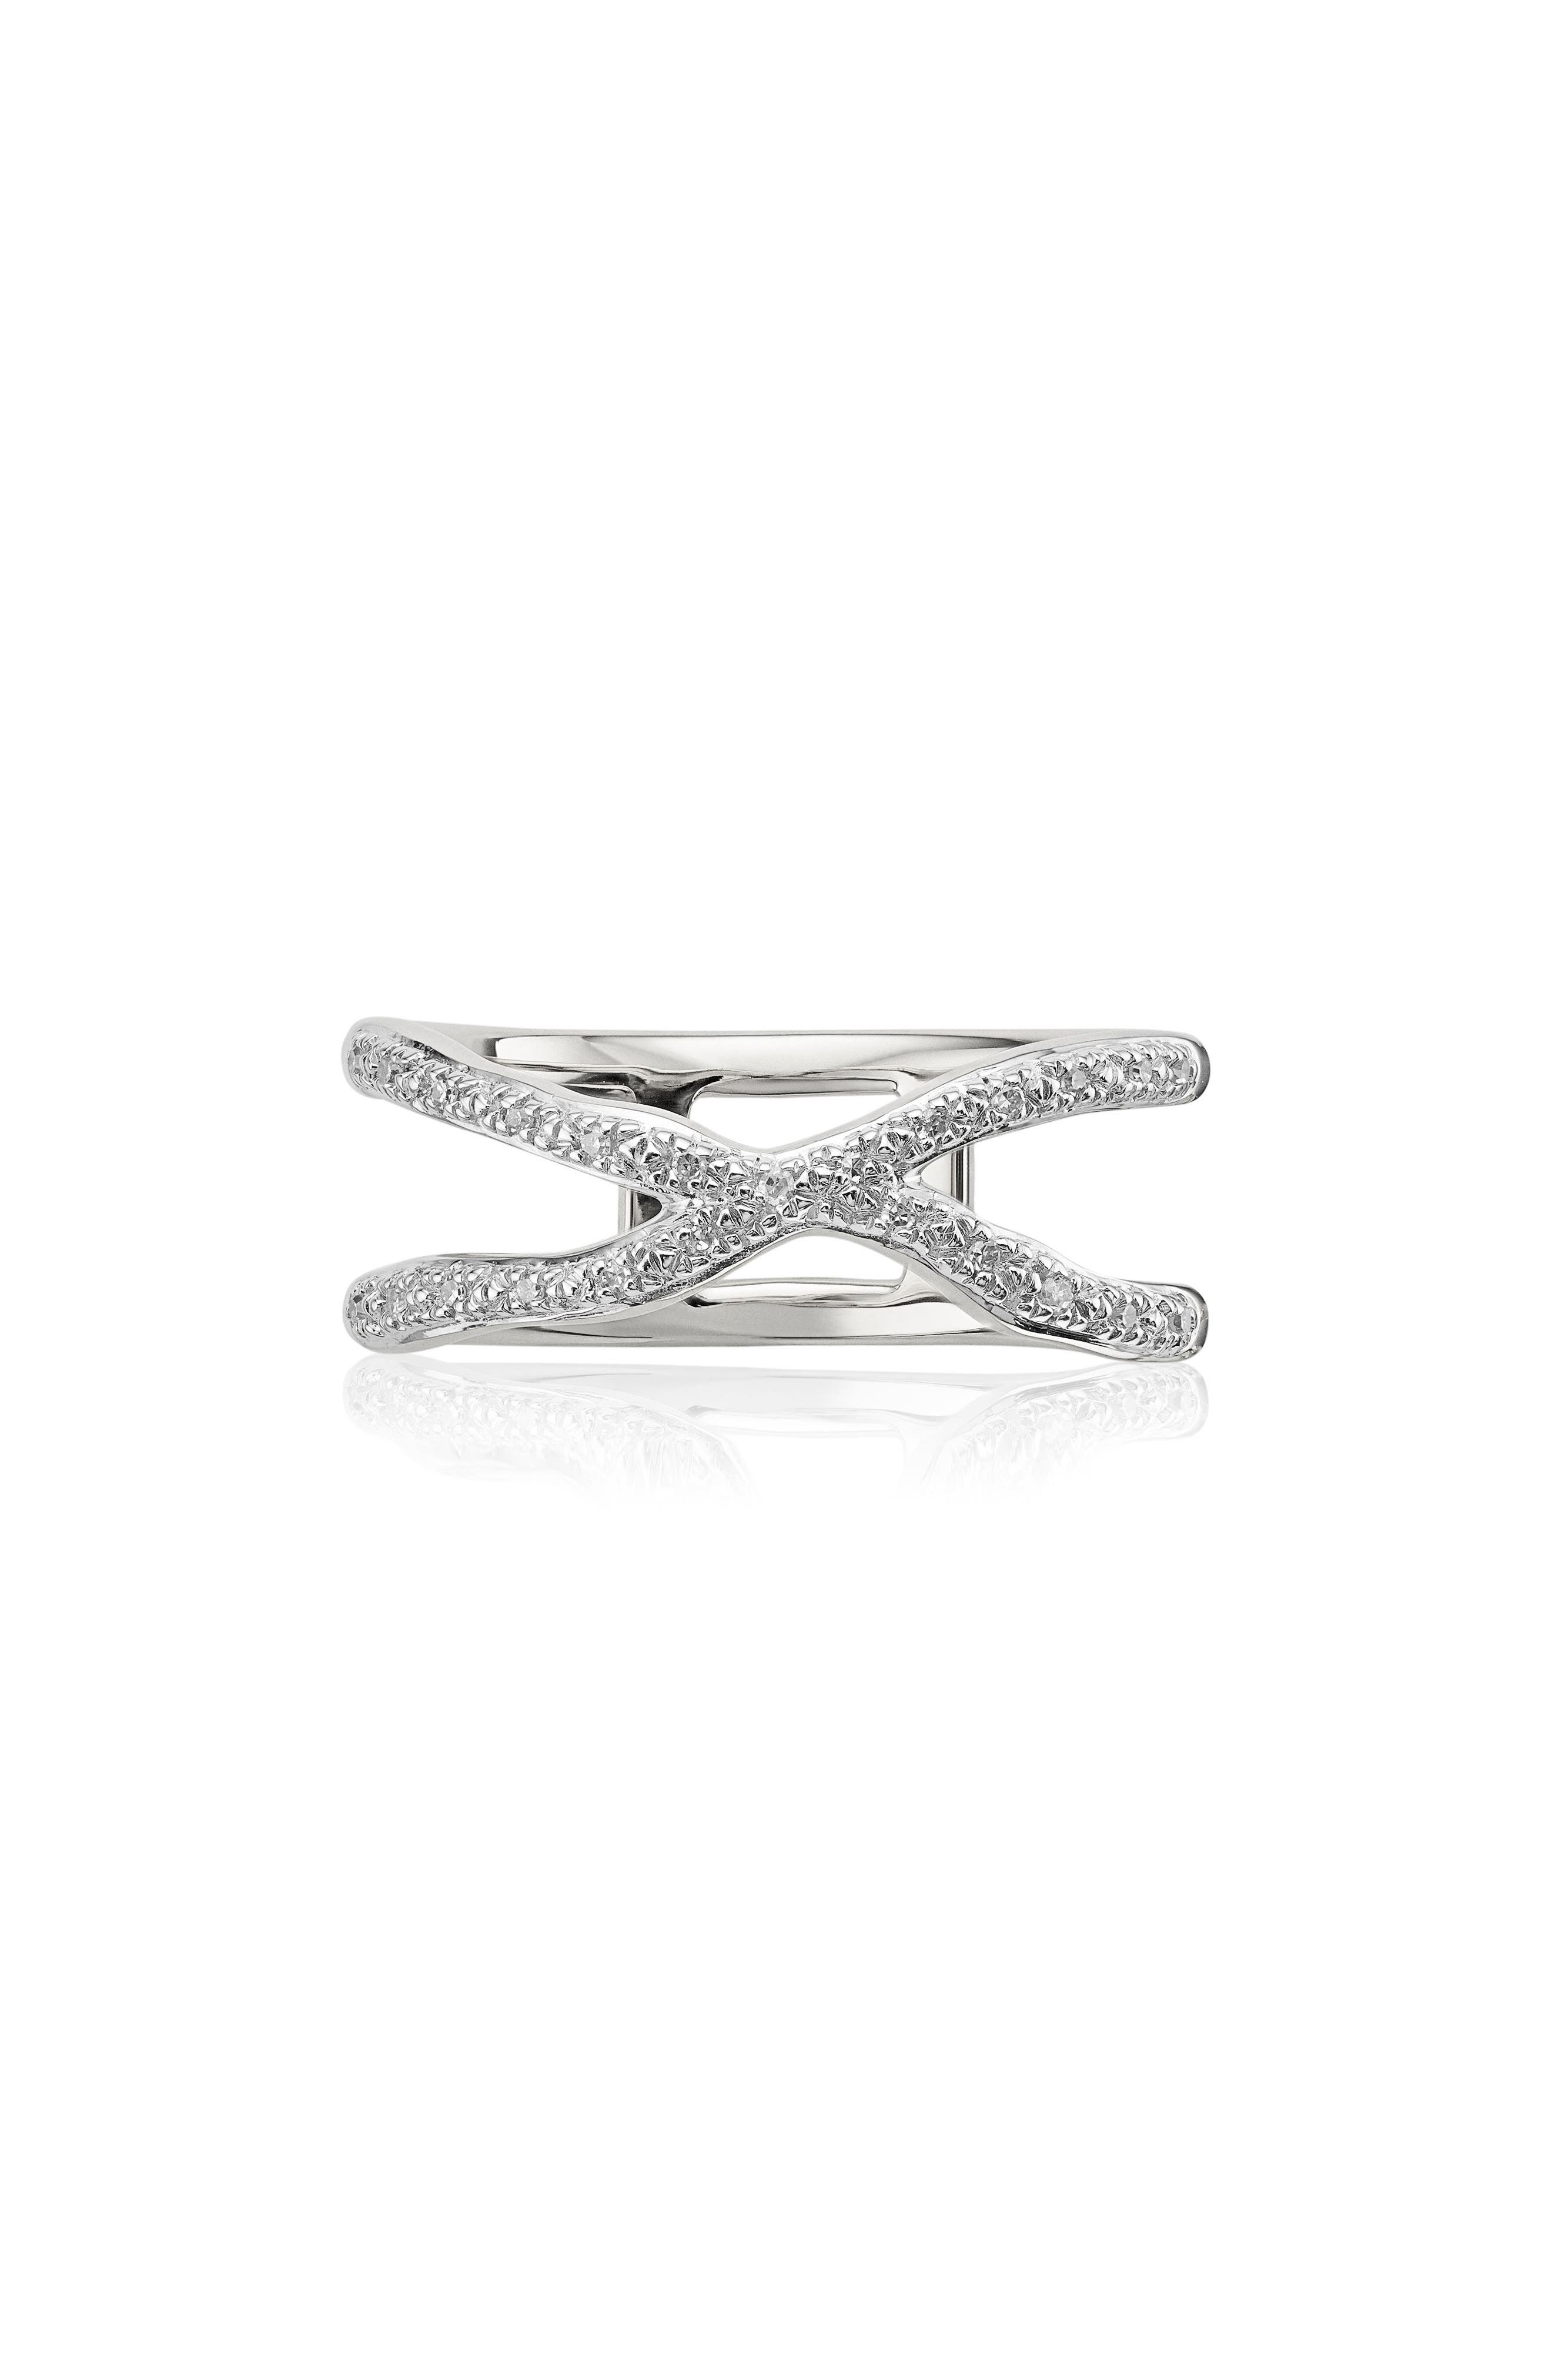 Riva Diamond Ring,                             Alternate thumbnail 3, color,                             SILVER/ DIAMOND